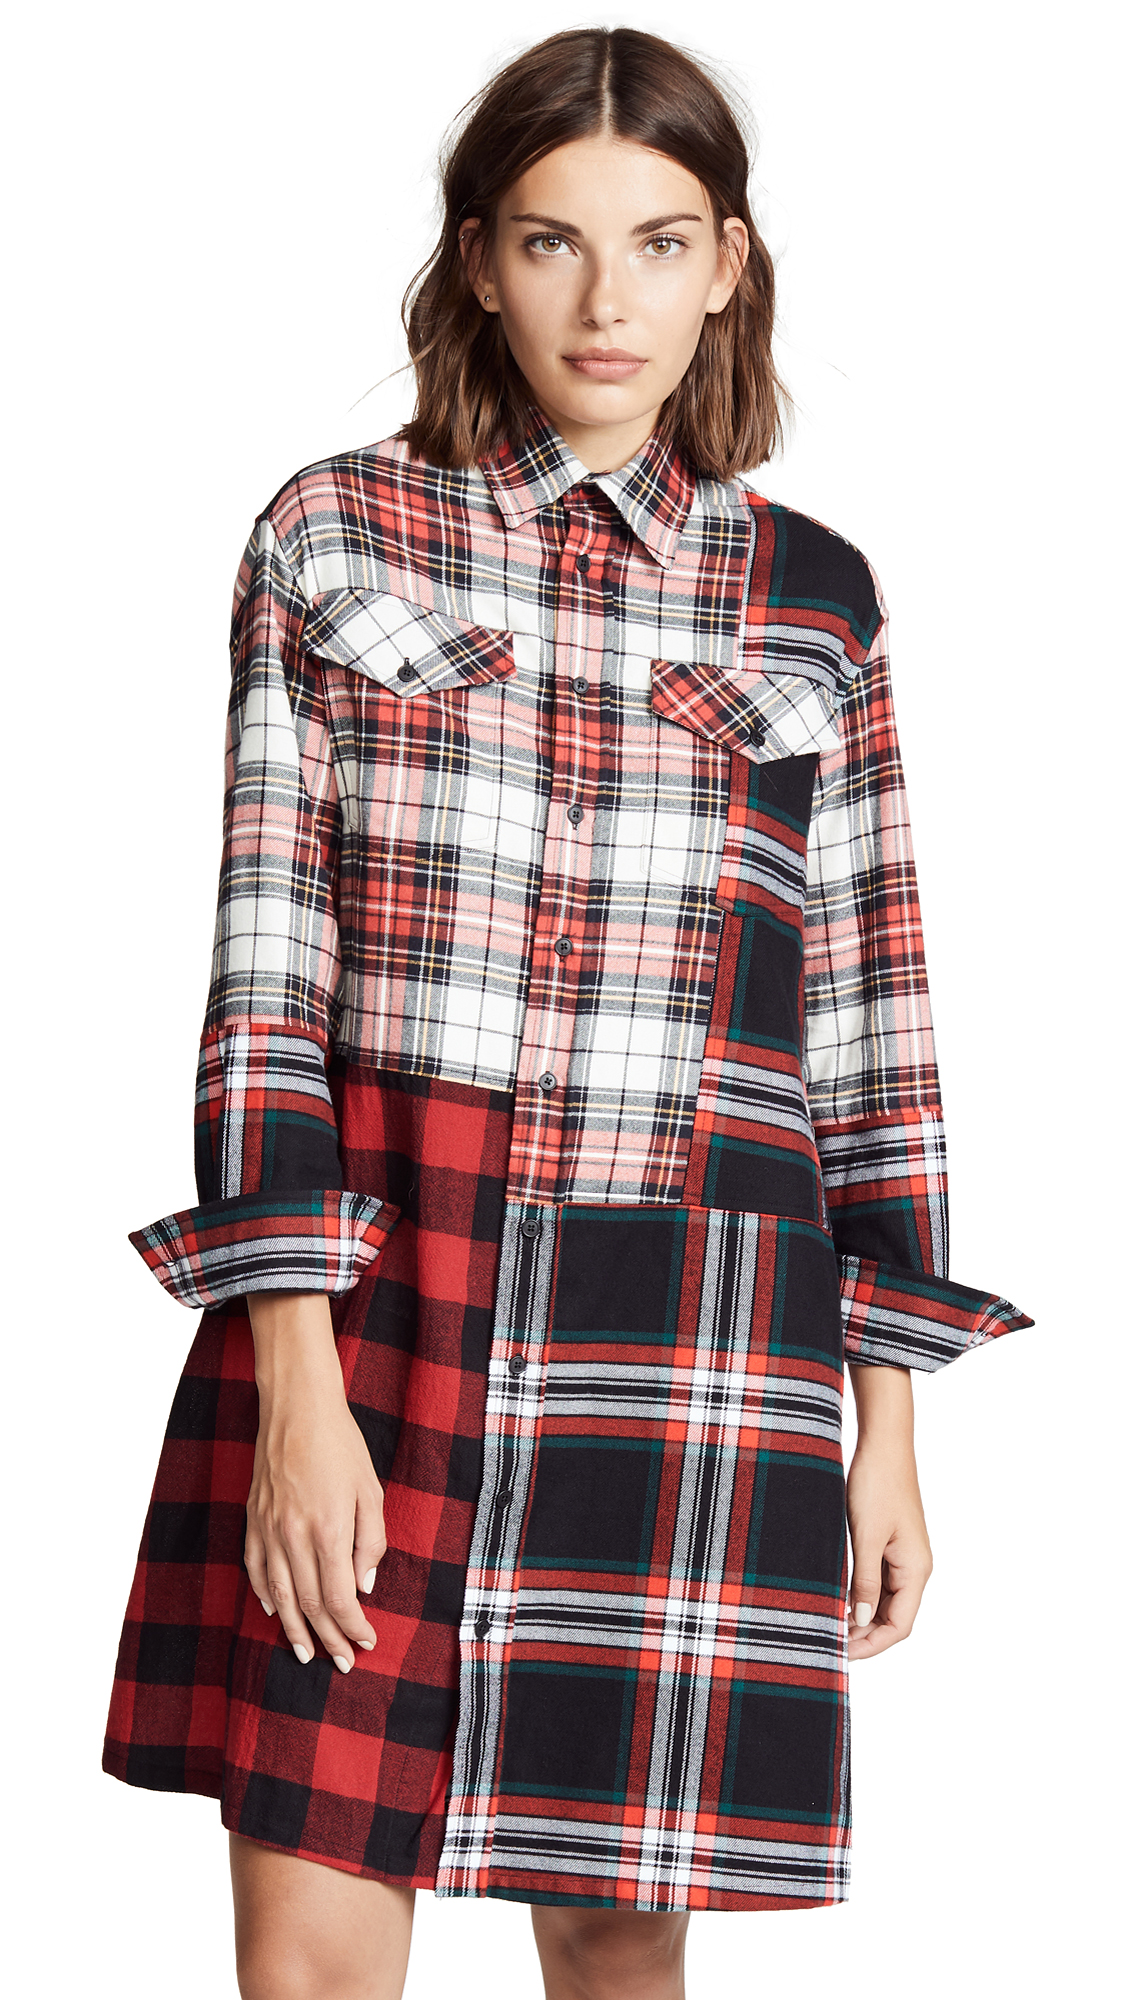 McQ – Alexander McQueen Patched Tartan Shirt Dress